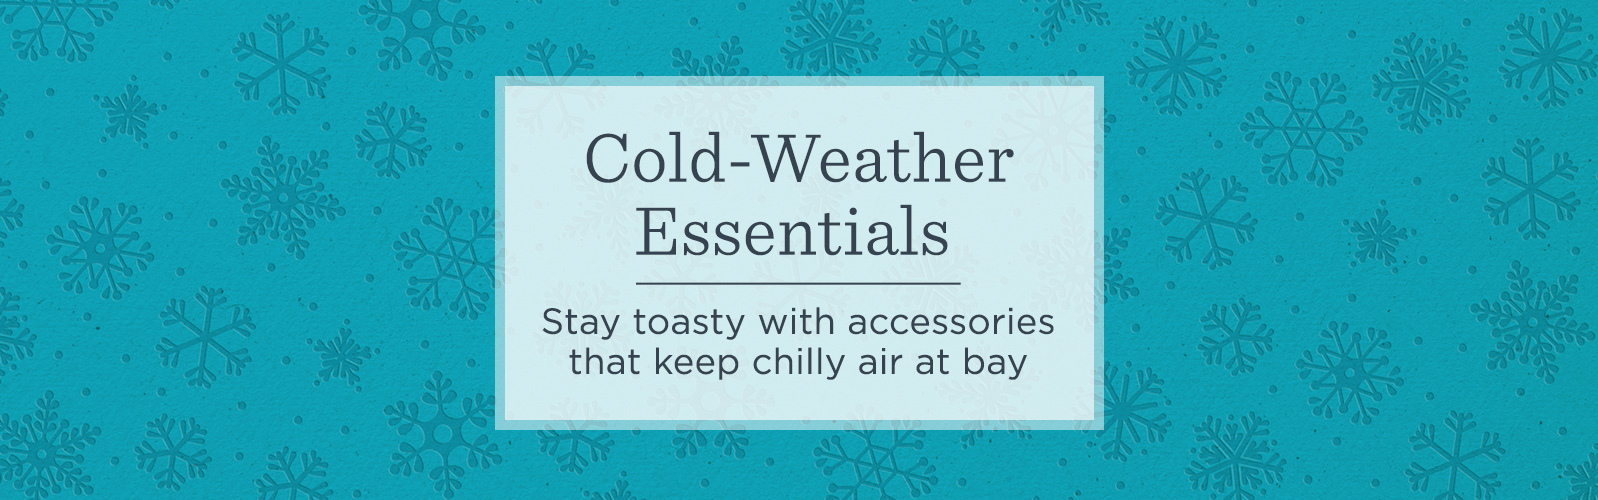 Cold-Weather Essentials  Stay toasty with accessories that keep chilly air at bay